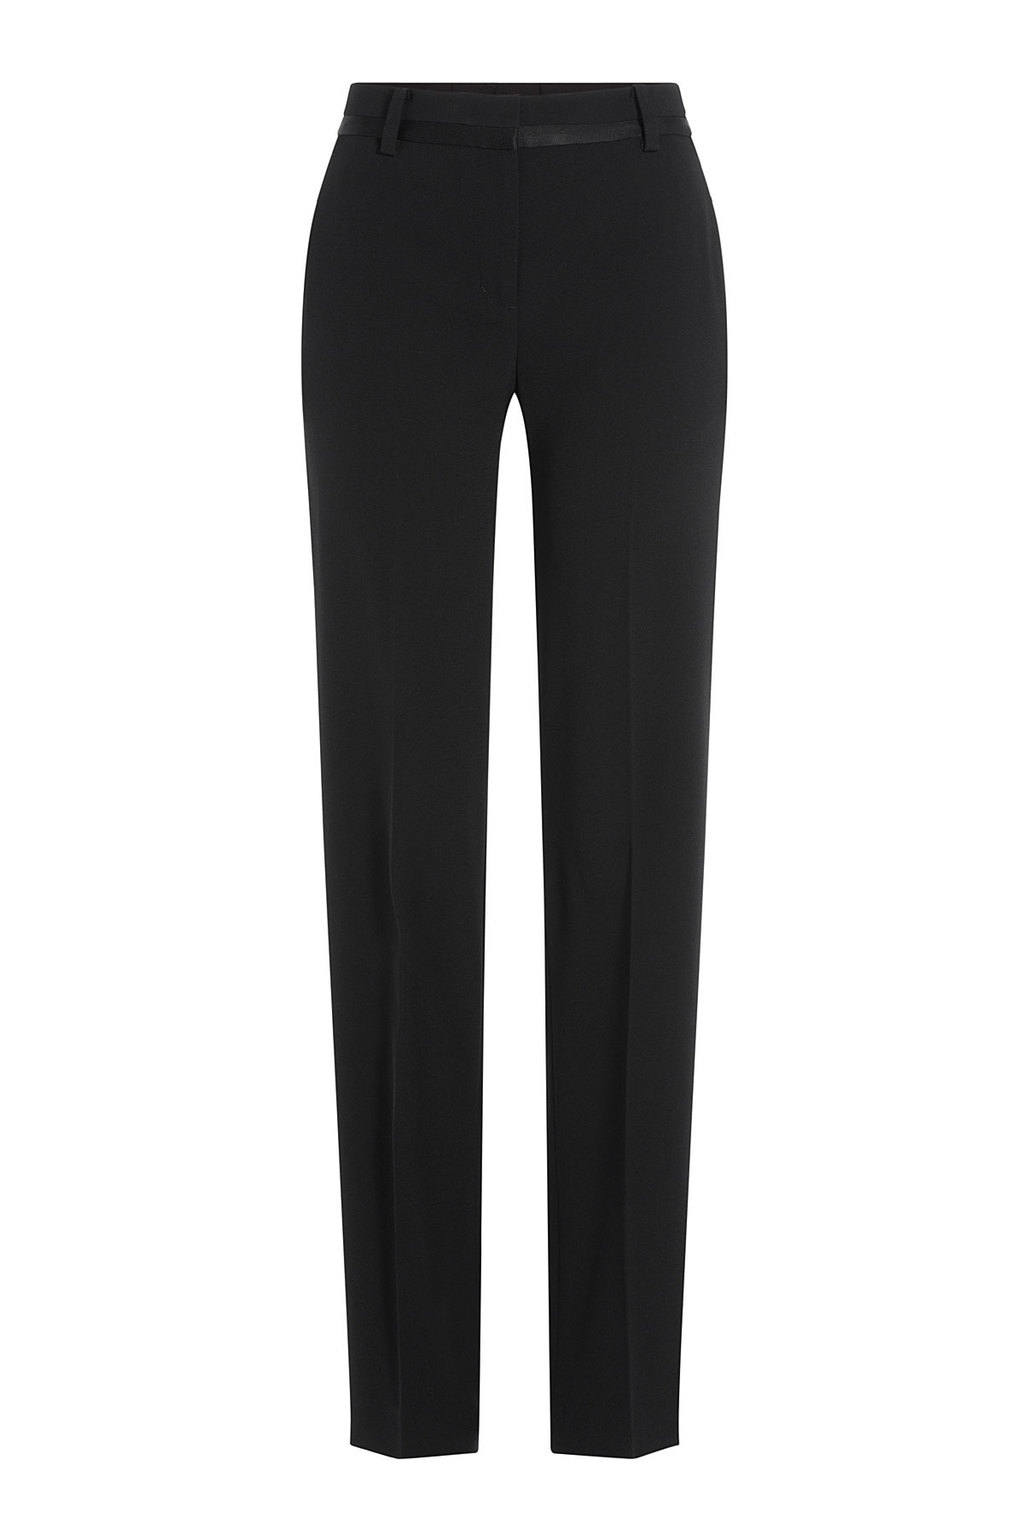 Straight Leg Pants Black - length: standard; pattern: plain; waist: mid/regular rise; predominant colour: black; occasions: evening, work, creative work; fibres: acrylic - mix; fit: straight leg; pattern type: fabric; texture group: woven light midweight; style: standard; season: a/w 2015